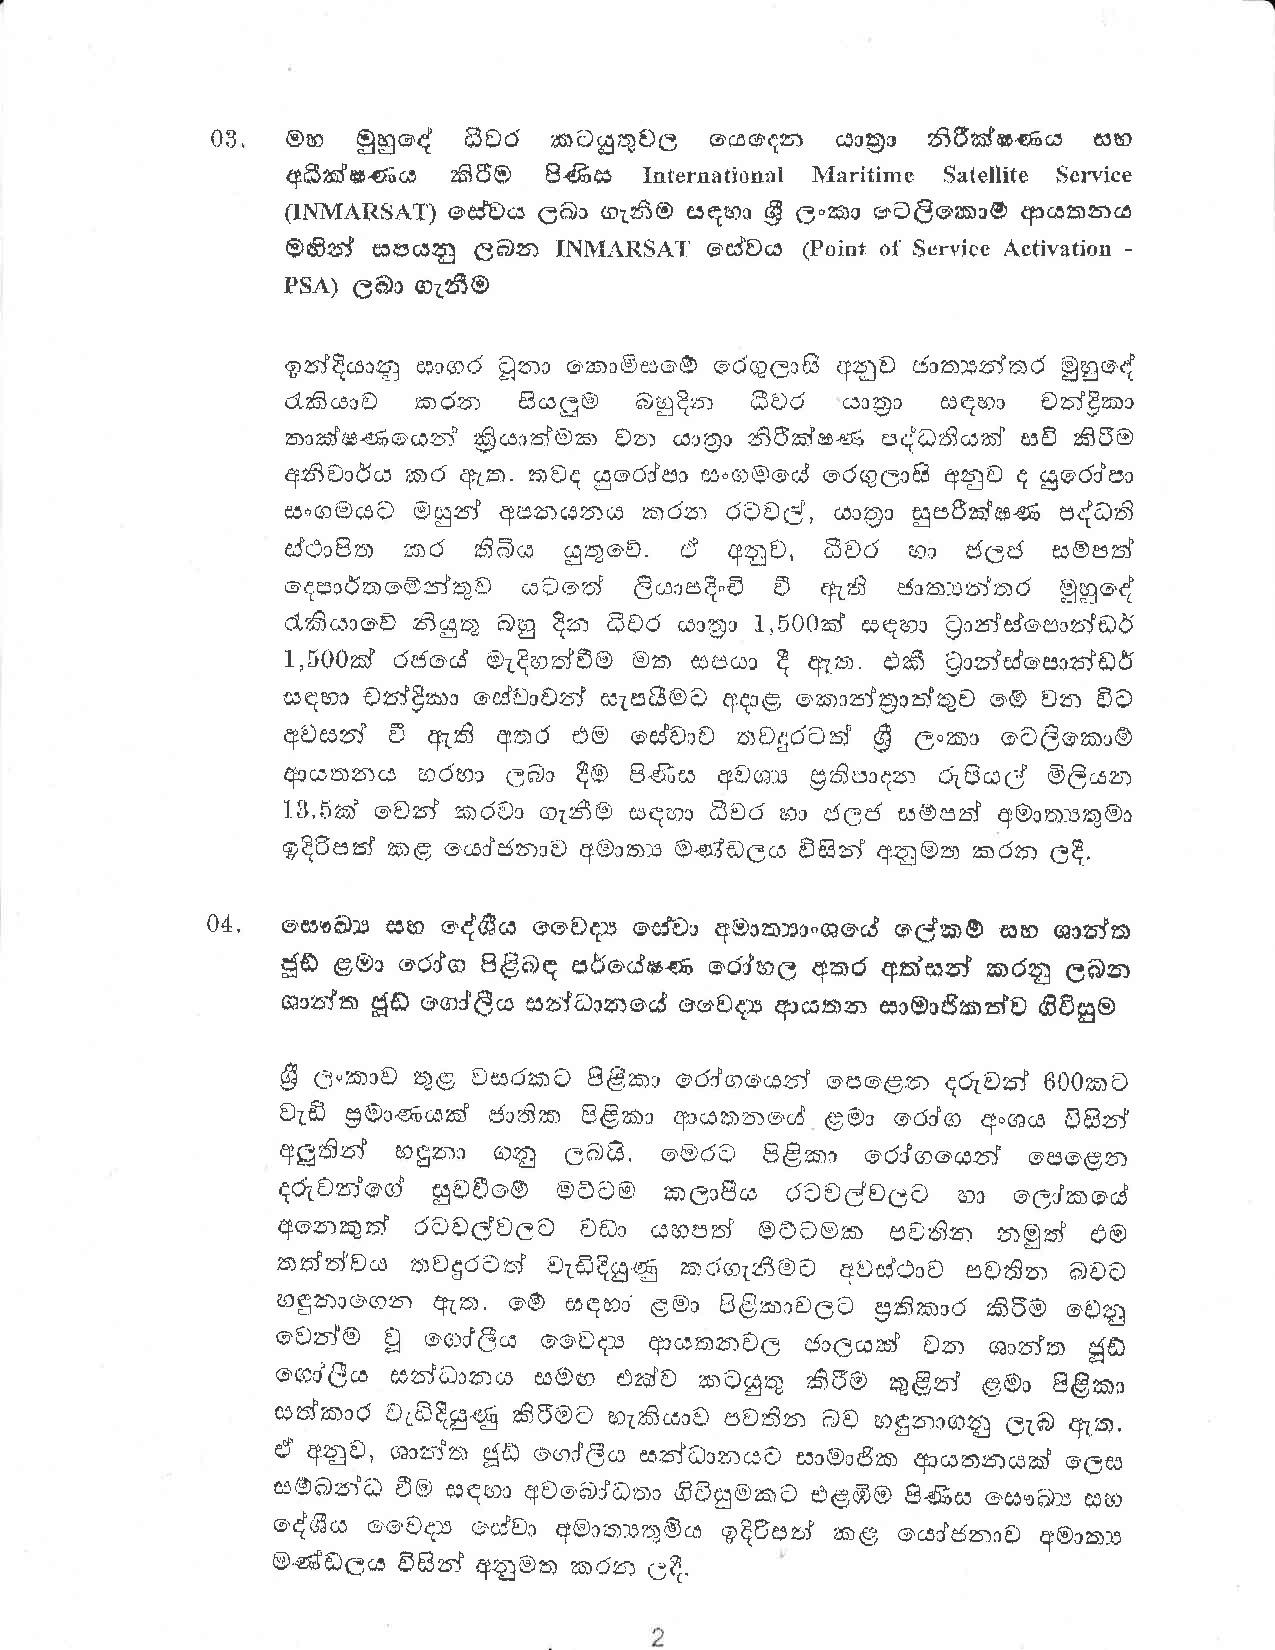 Cabinet Decision on 27.02.2020 page 002